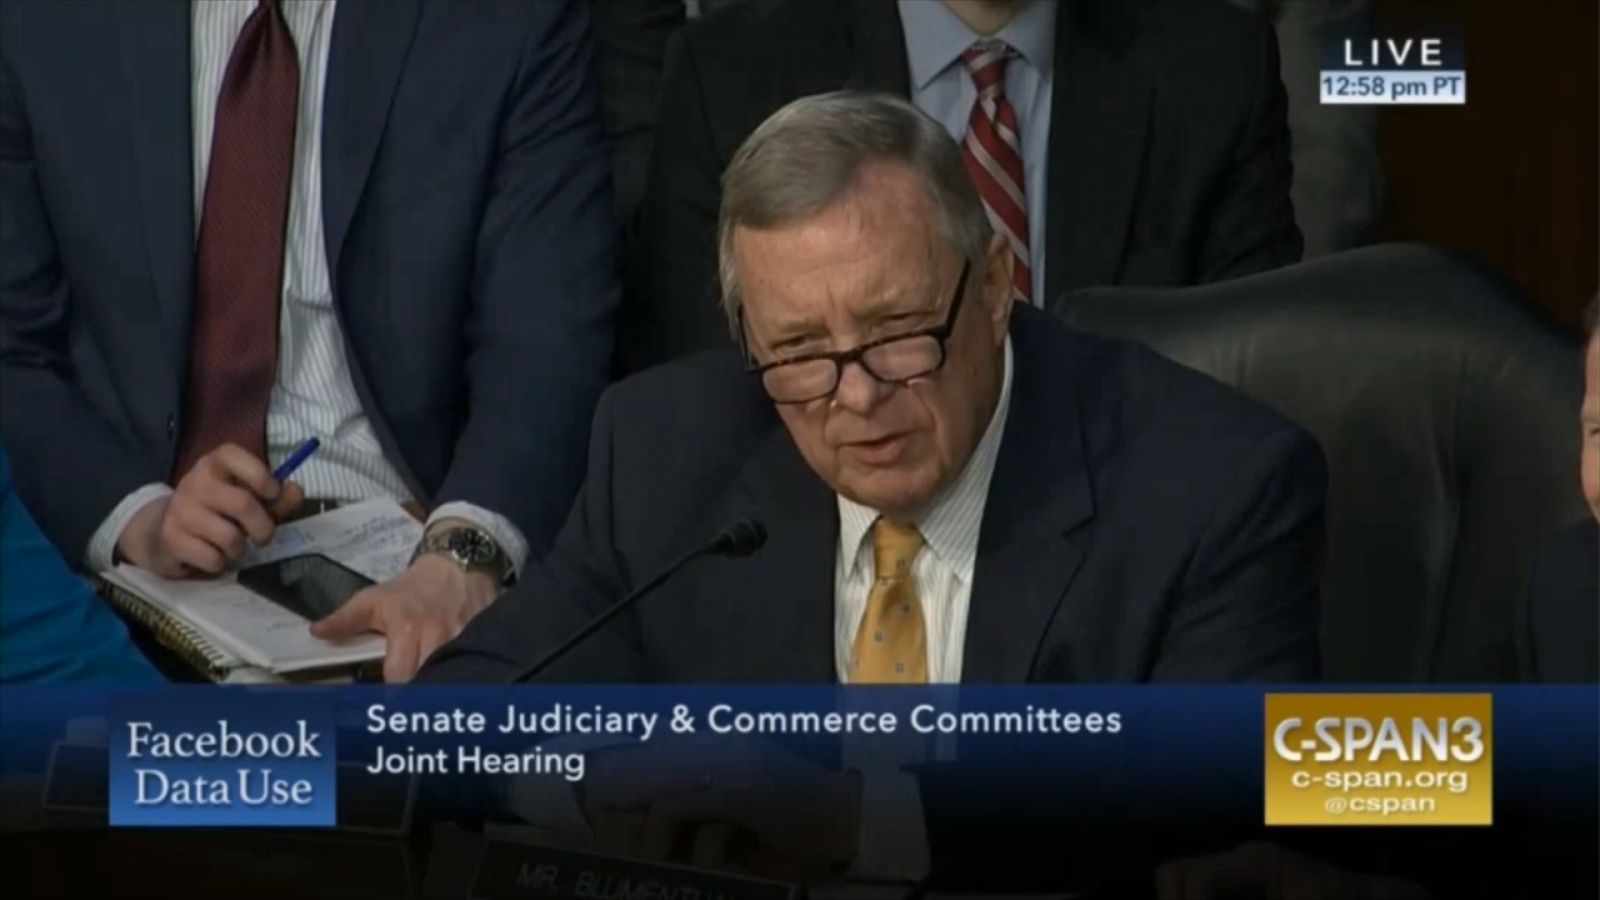 senator-dick-durbin-asks-facebook-ceo-mark-zuckerberg-if-he-minds-sharing-what-hotel-he-stayed-in